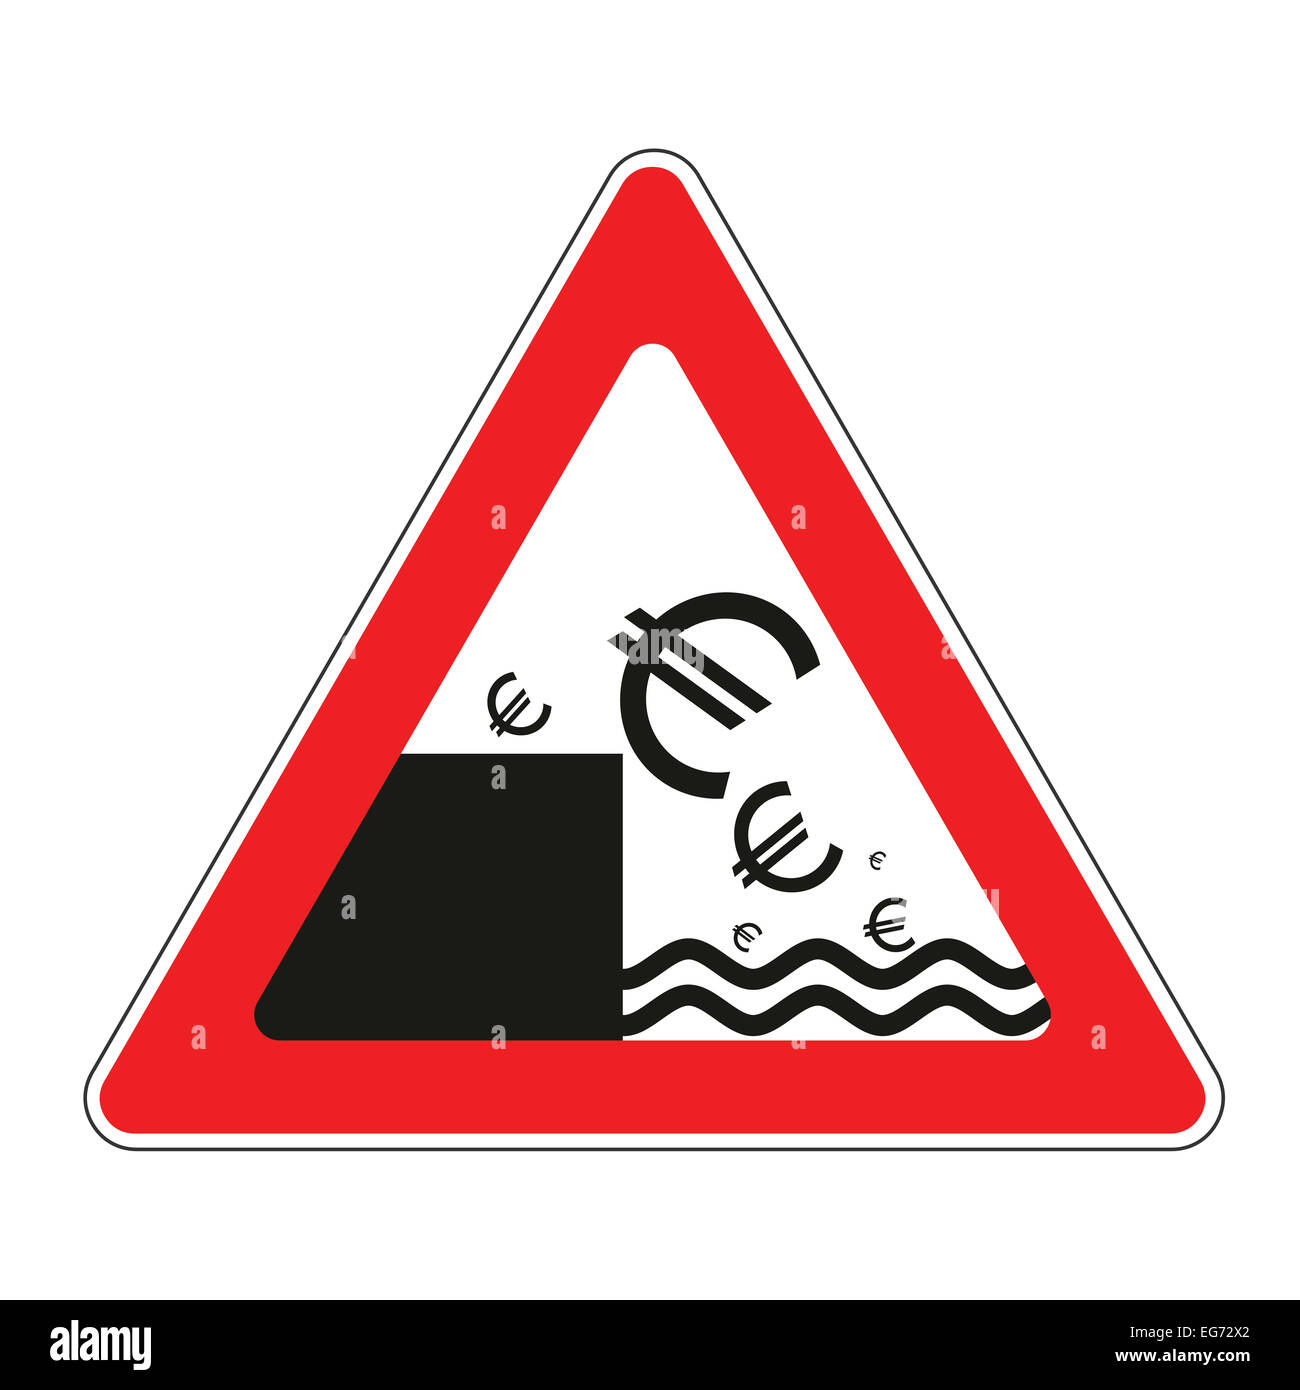 Illustration of road sign with Euro currency decline concept - Stock Image